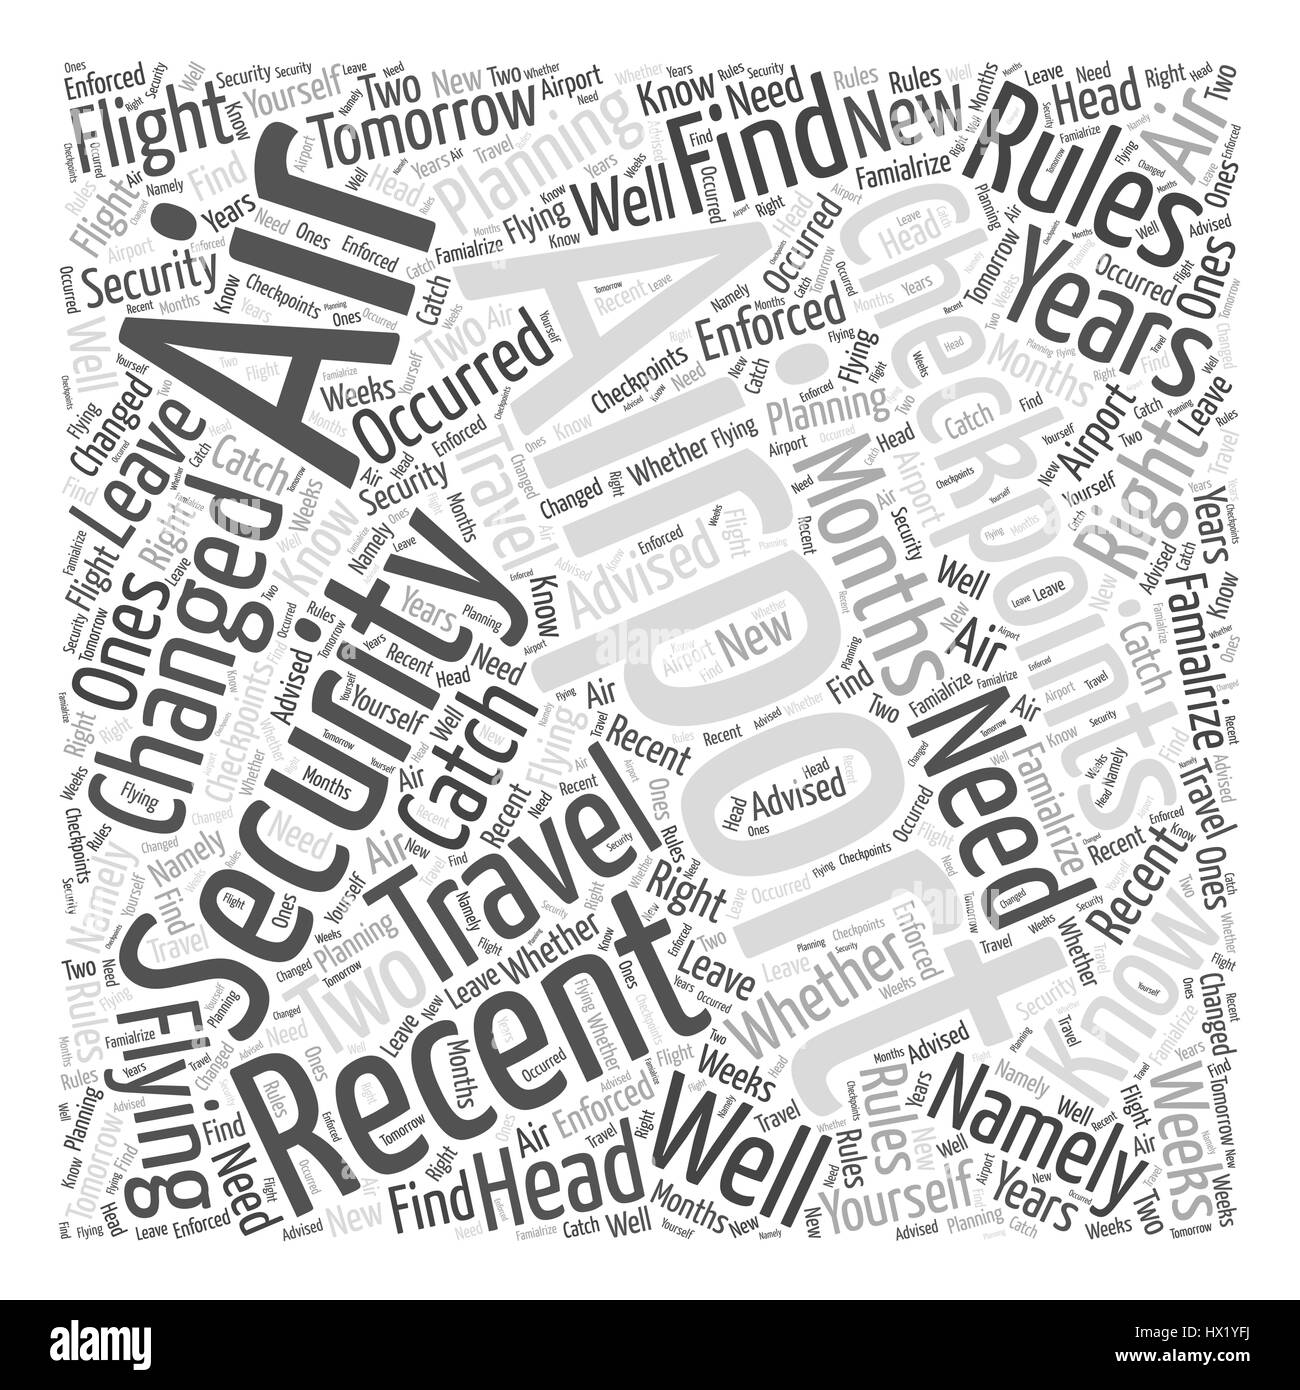 Airport Security Checkpoints What You Need to Know Word Cloud Concept Stock Vector